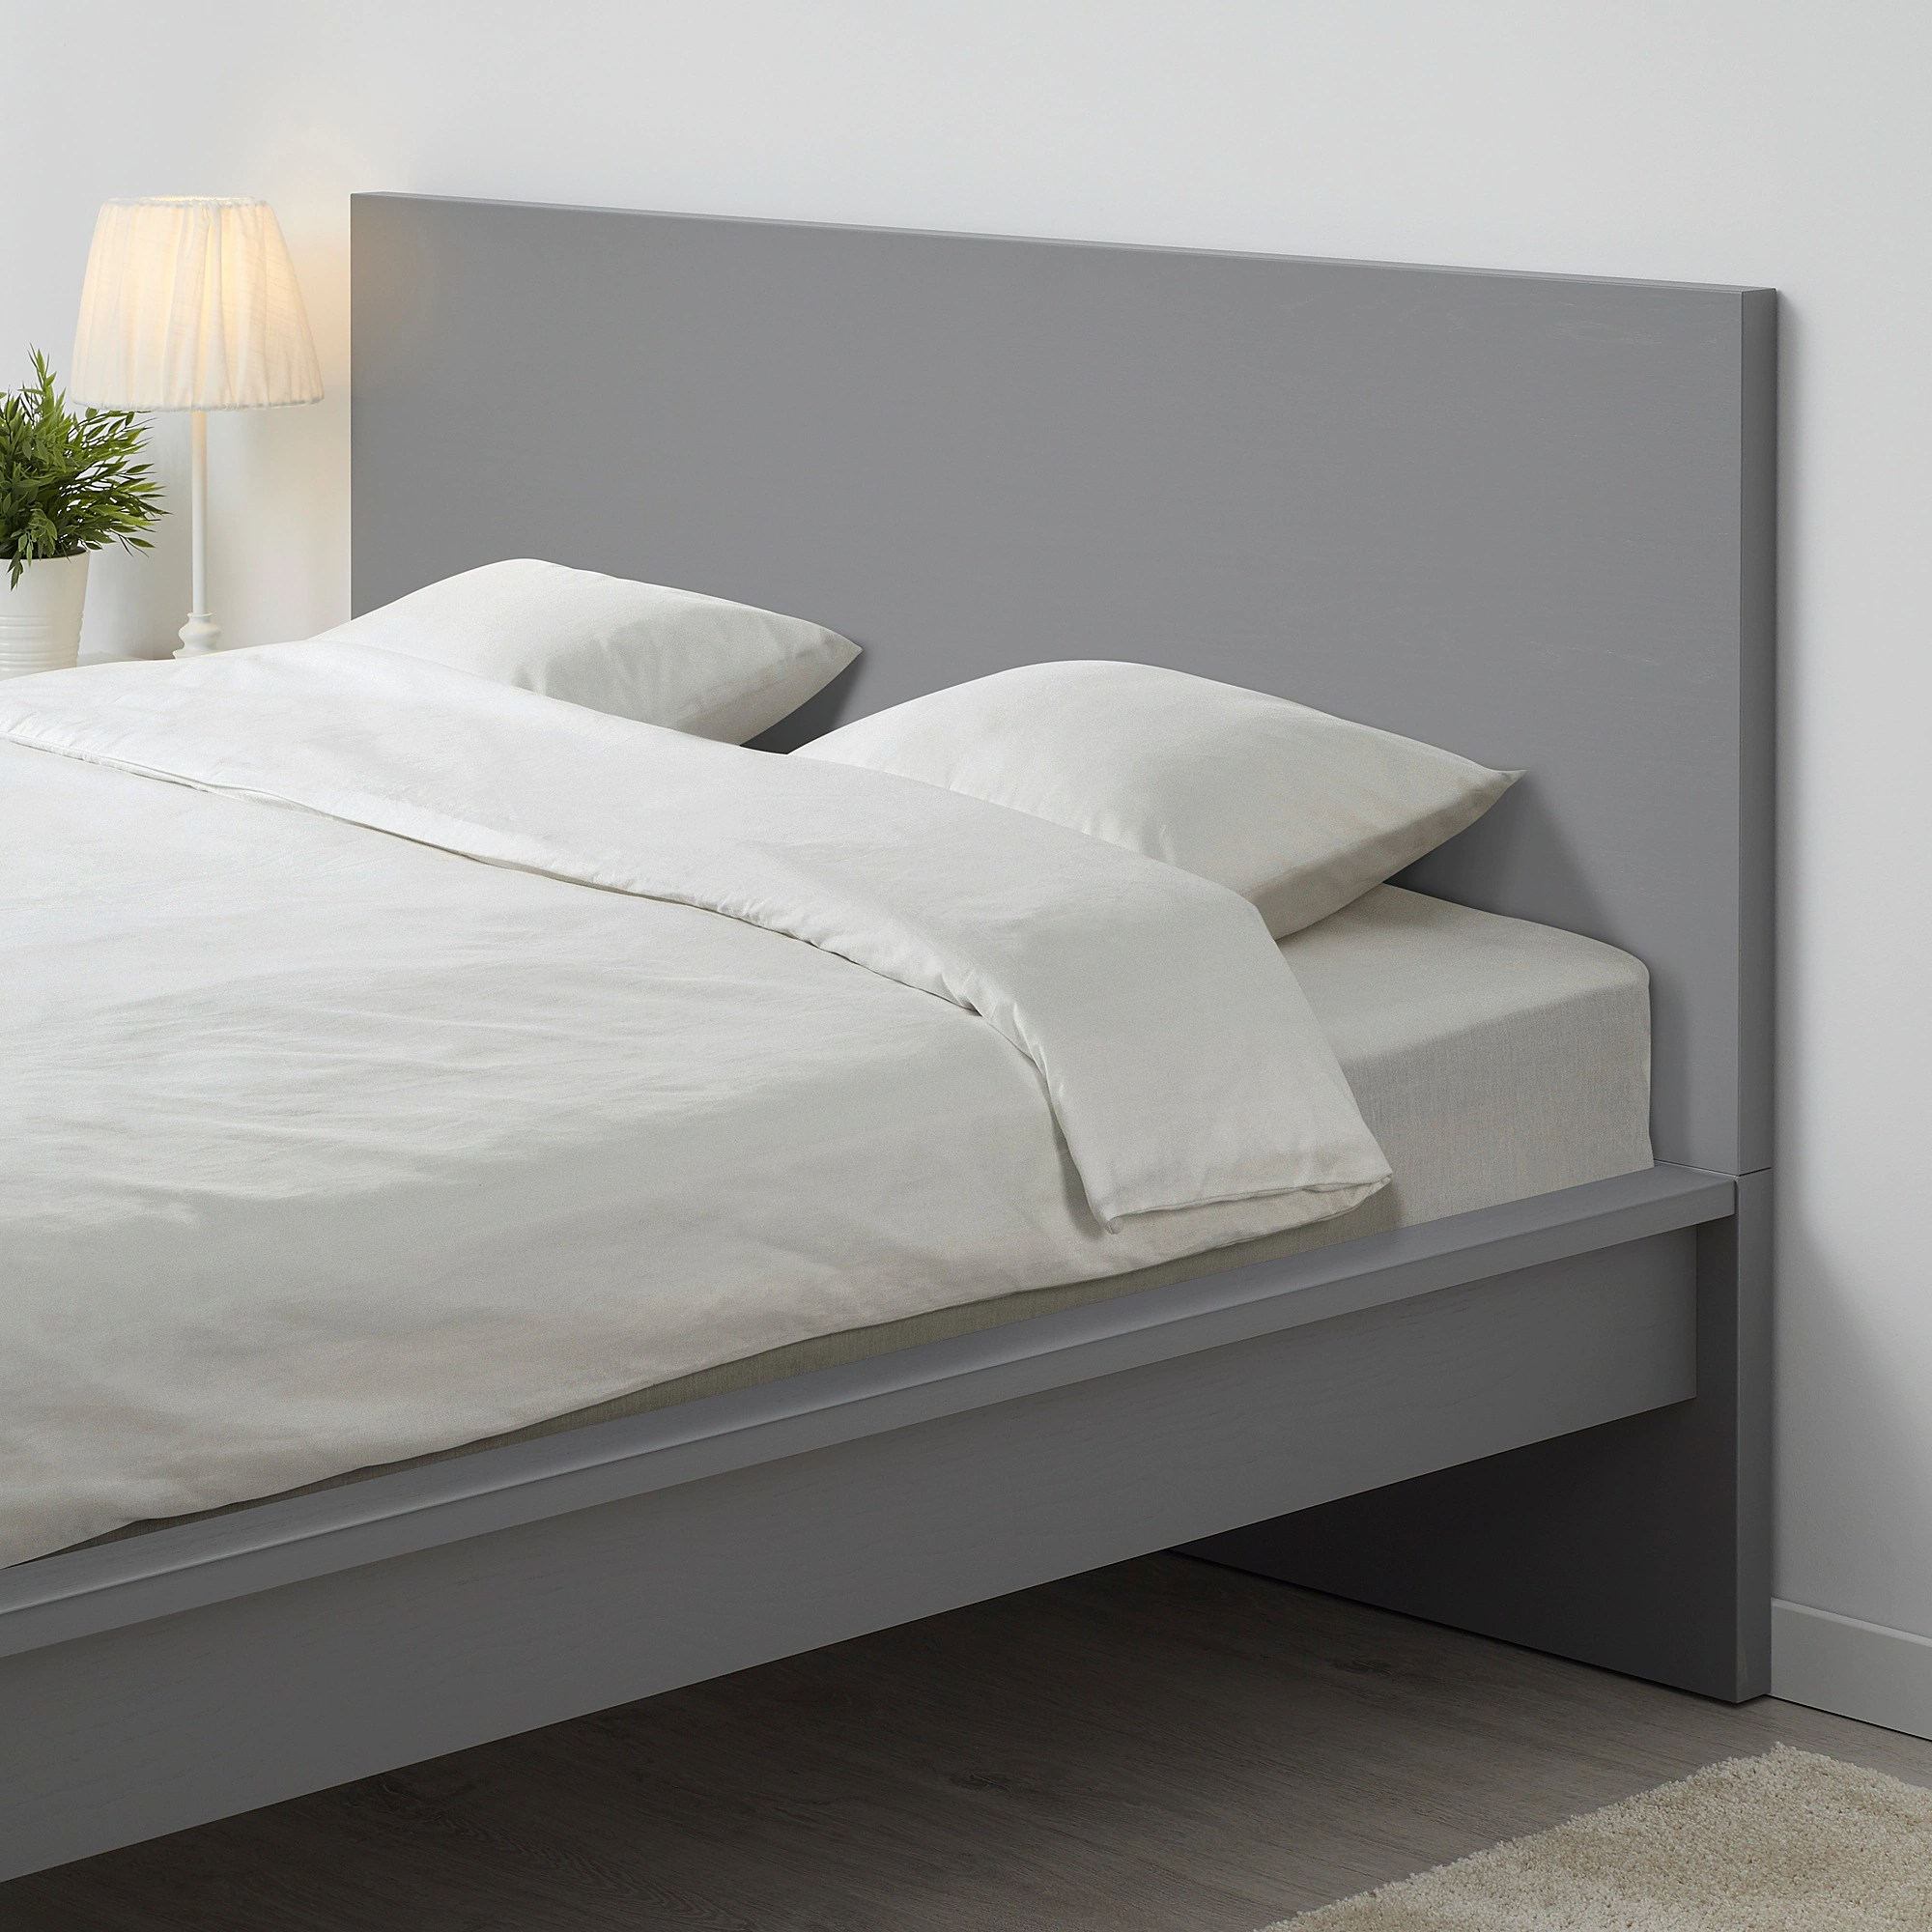 Hyllestad Matras Review Awesome Ikea Double Mattress For